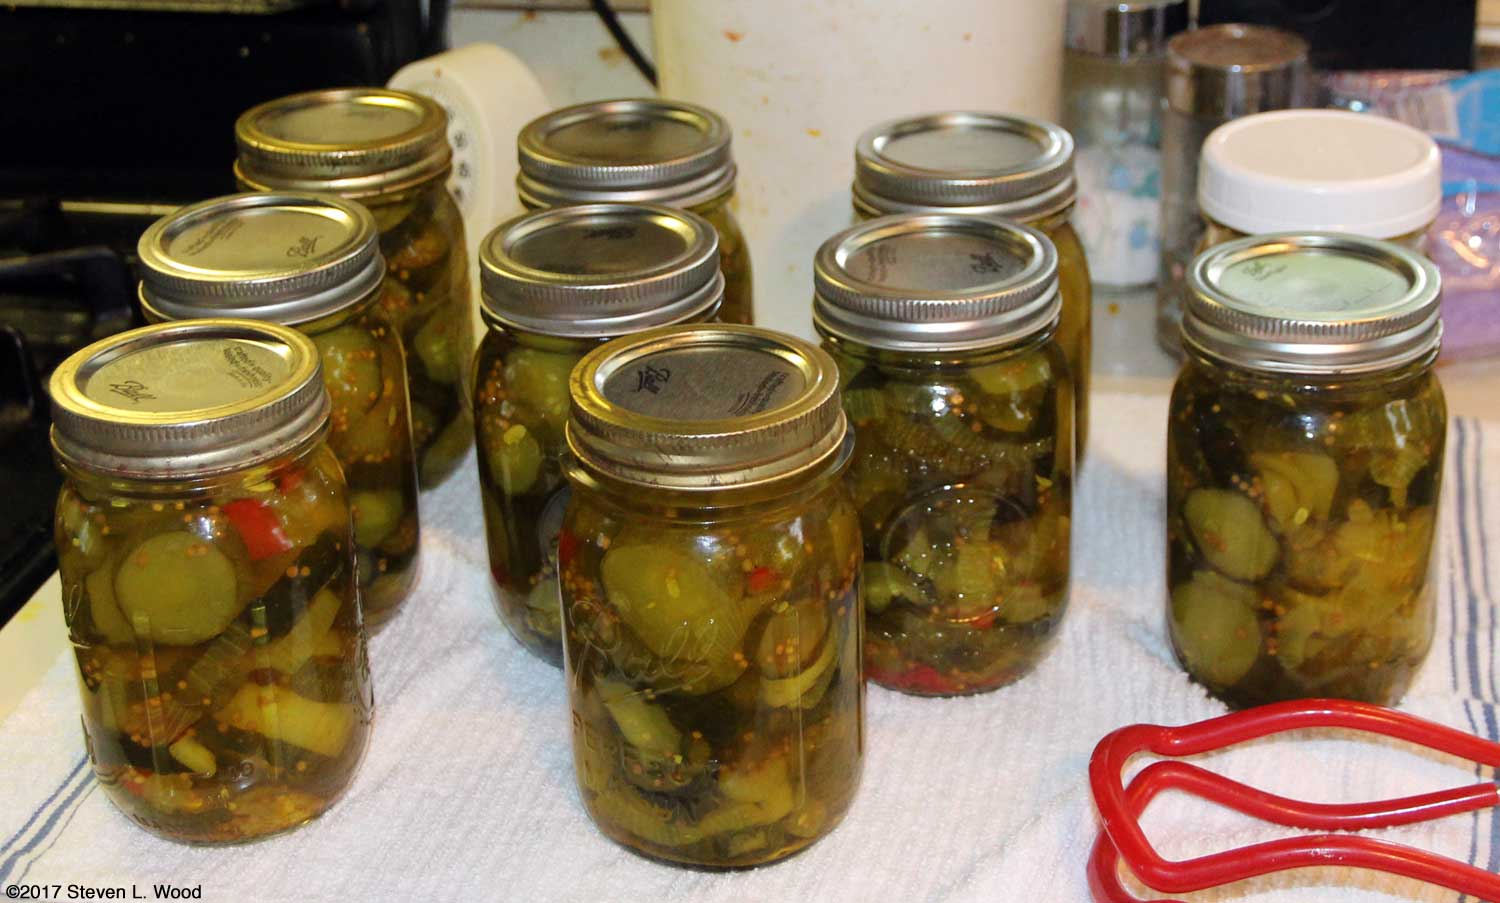 Ten pints of bread and butter pickles